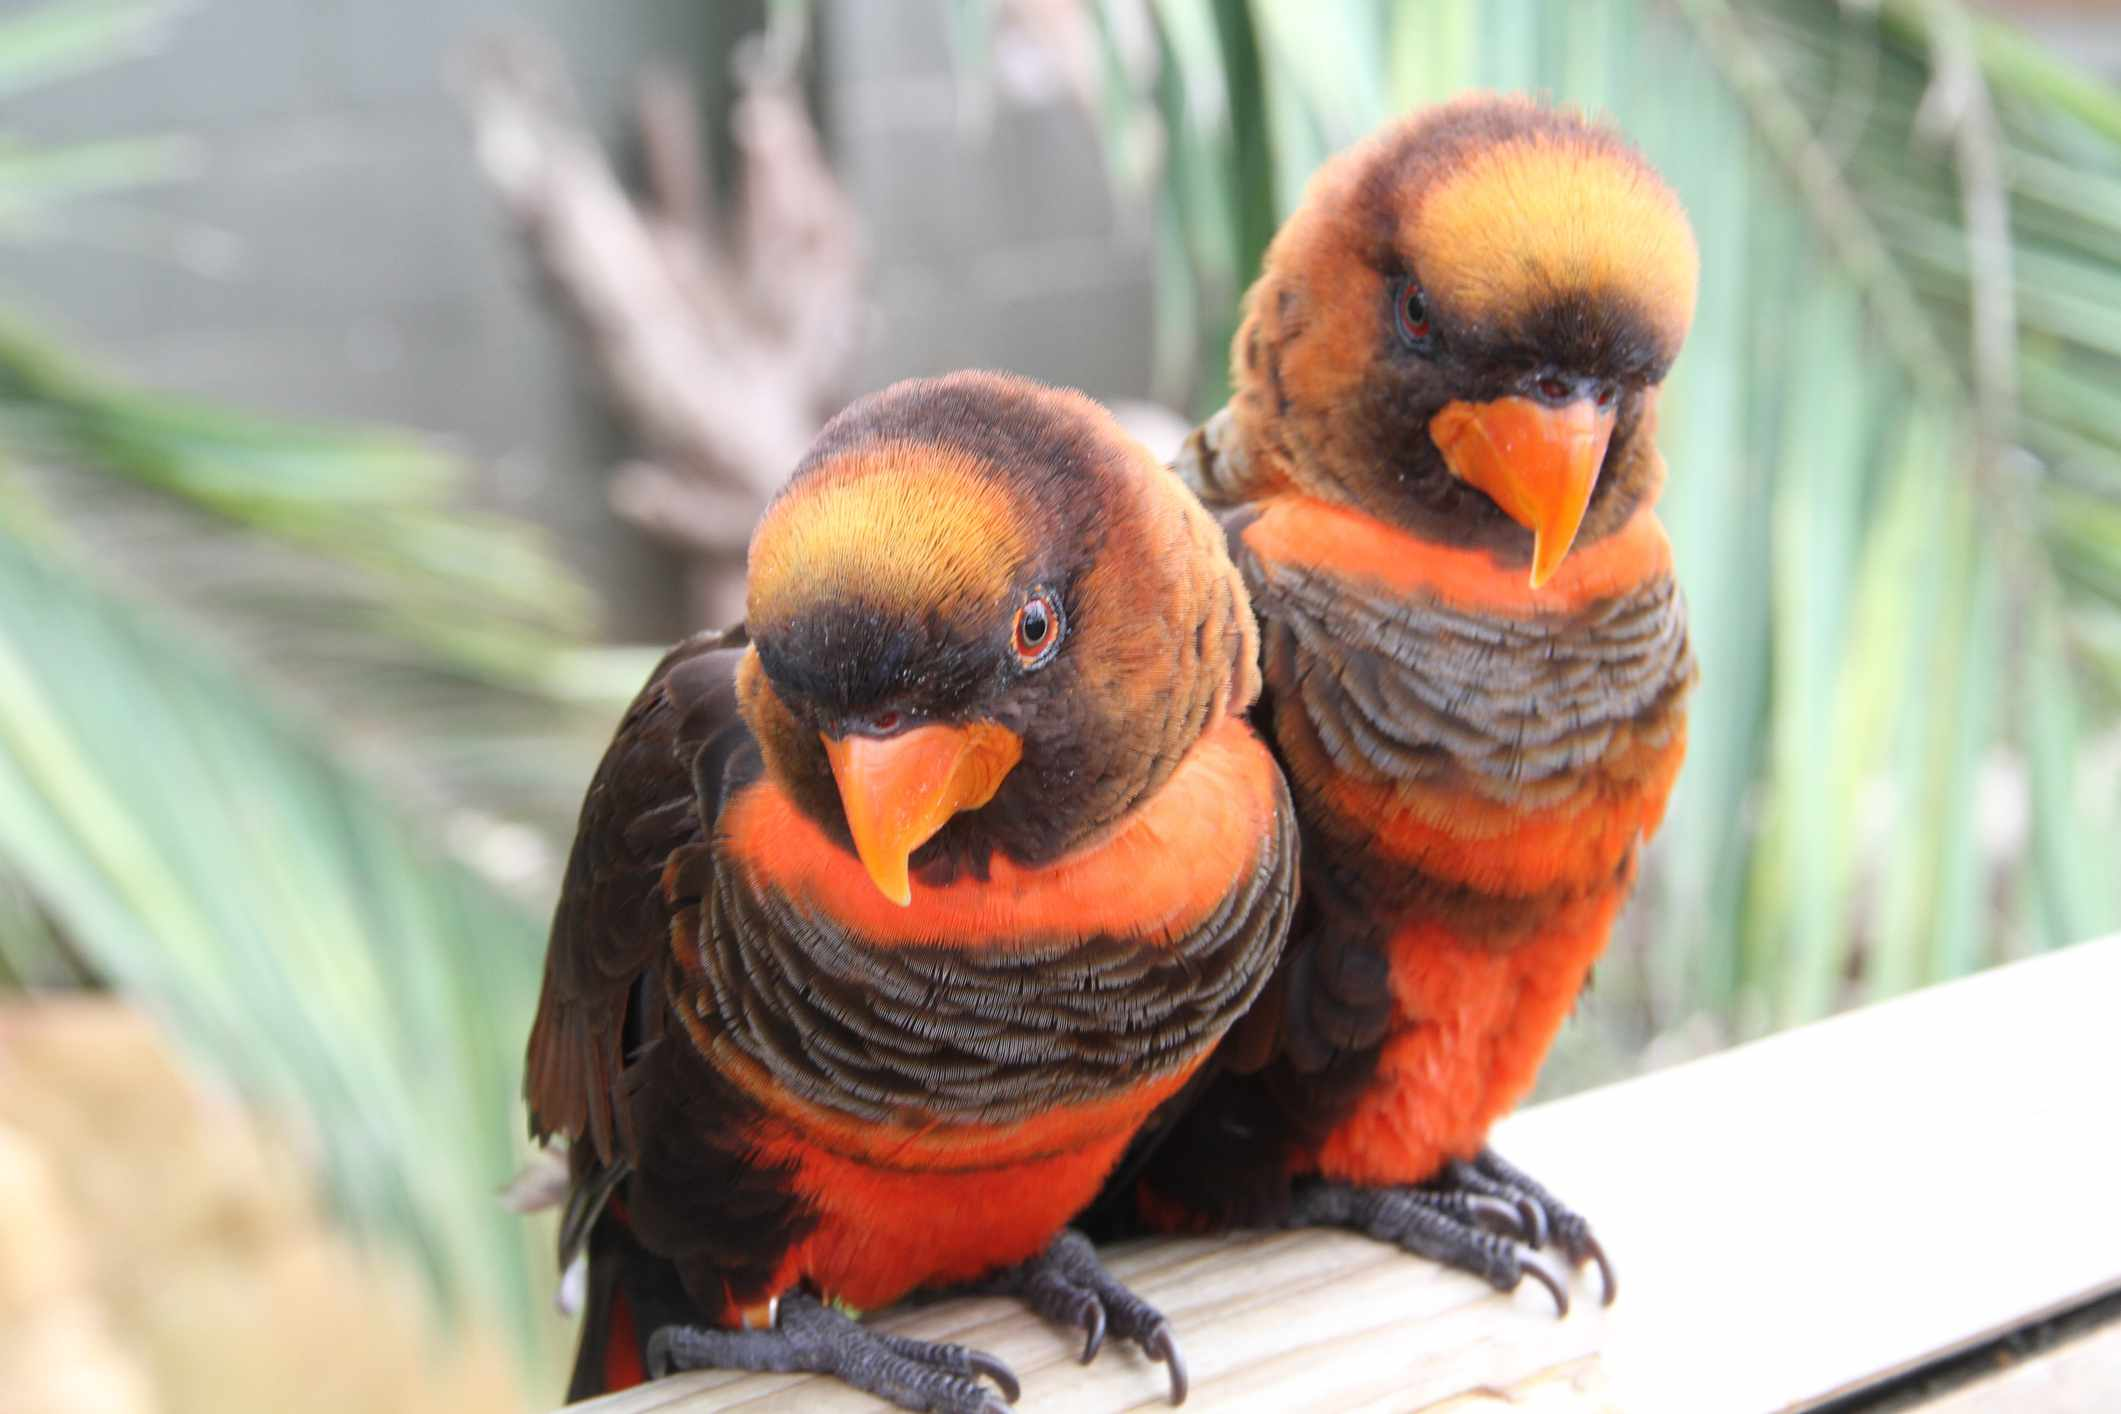 Pair of dusky lory parrots side by side